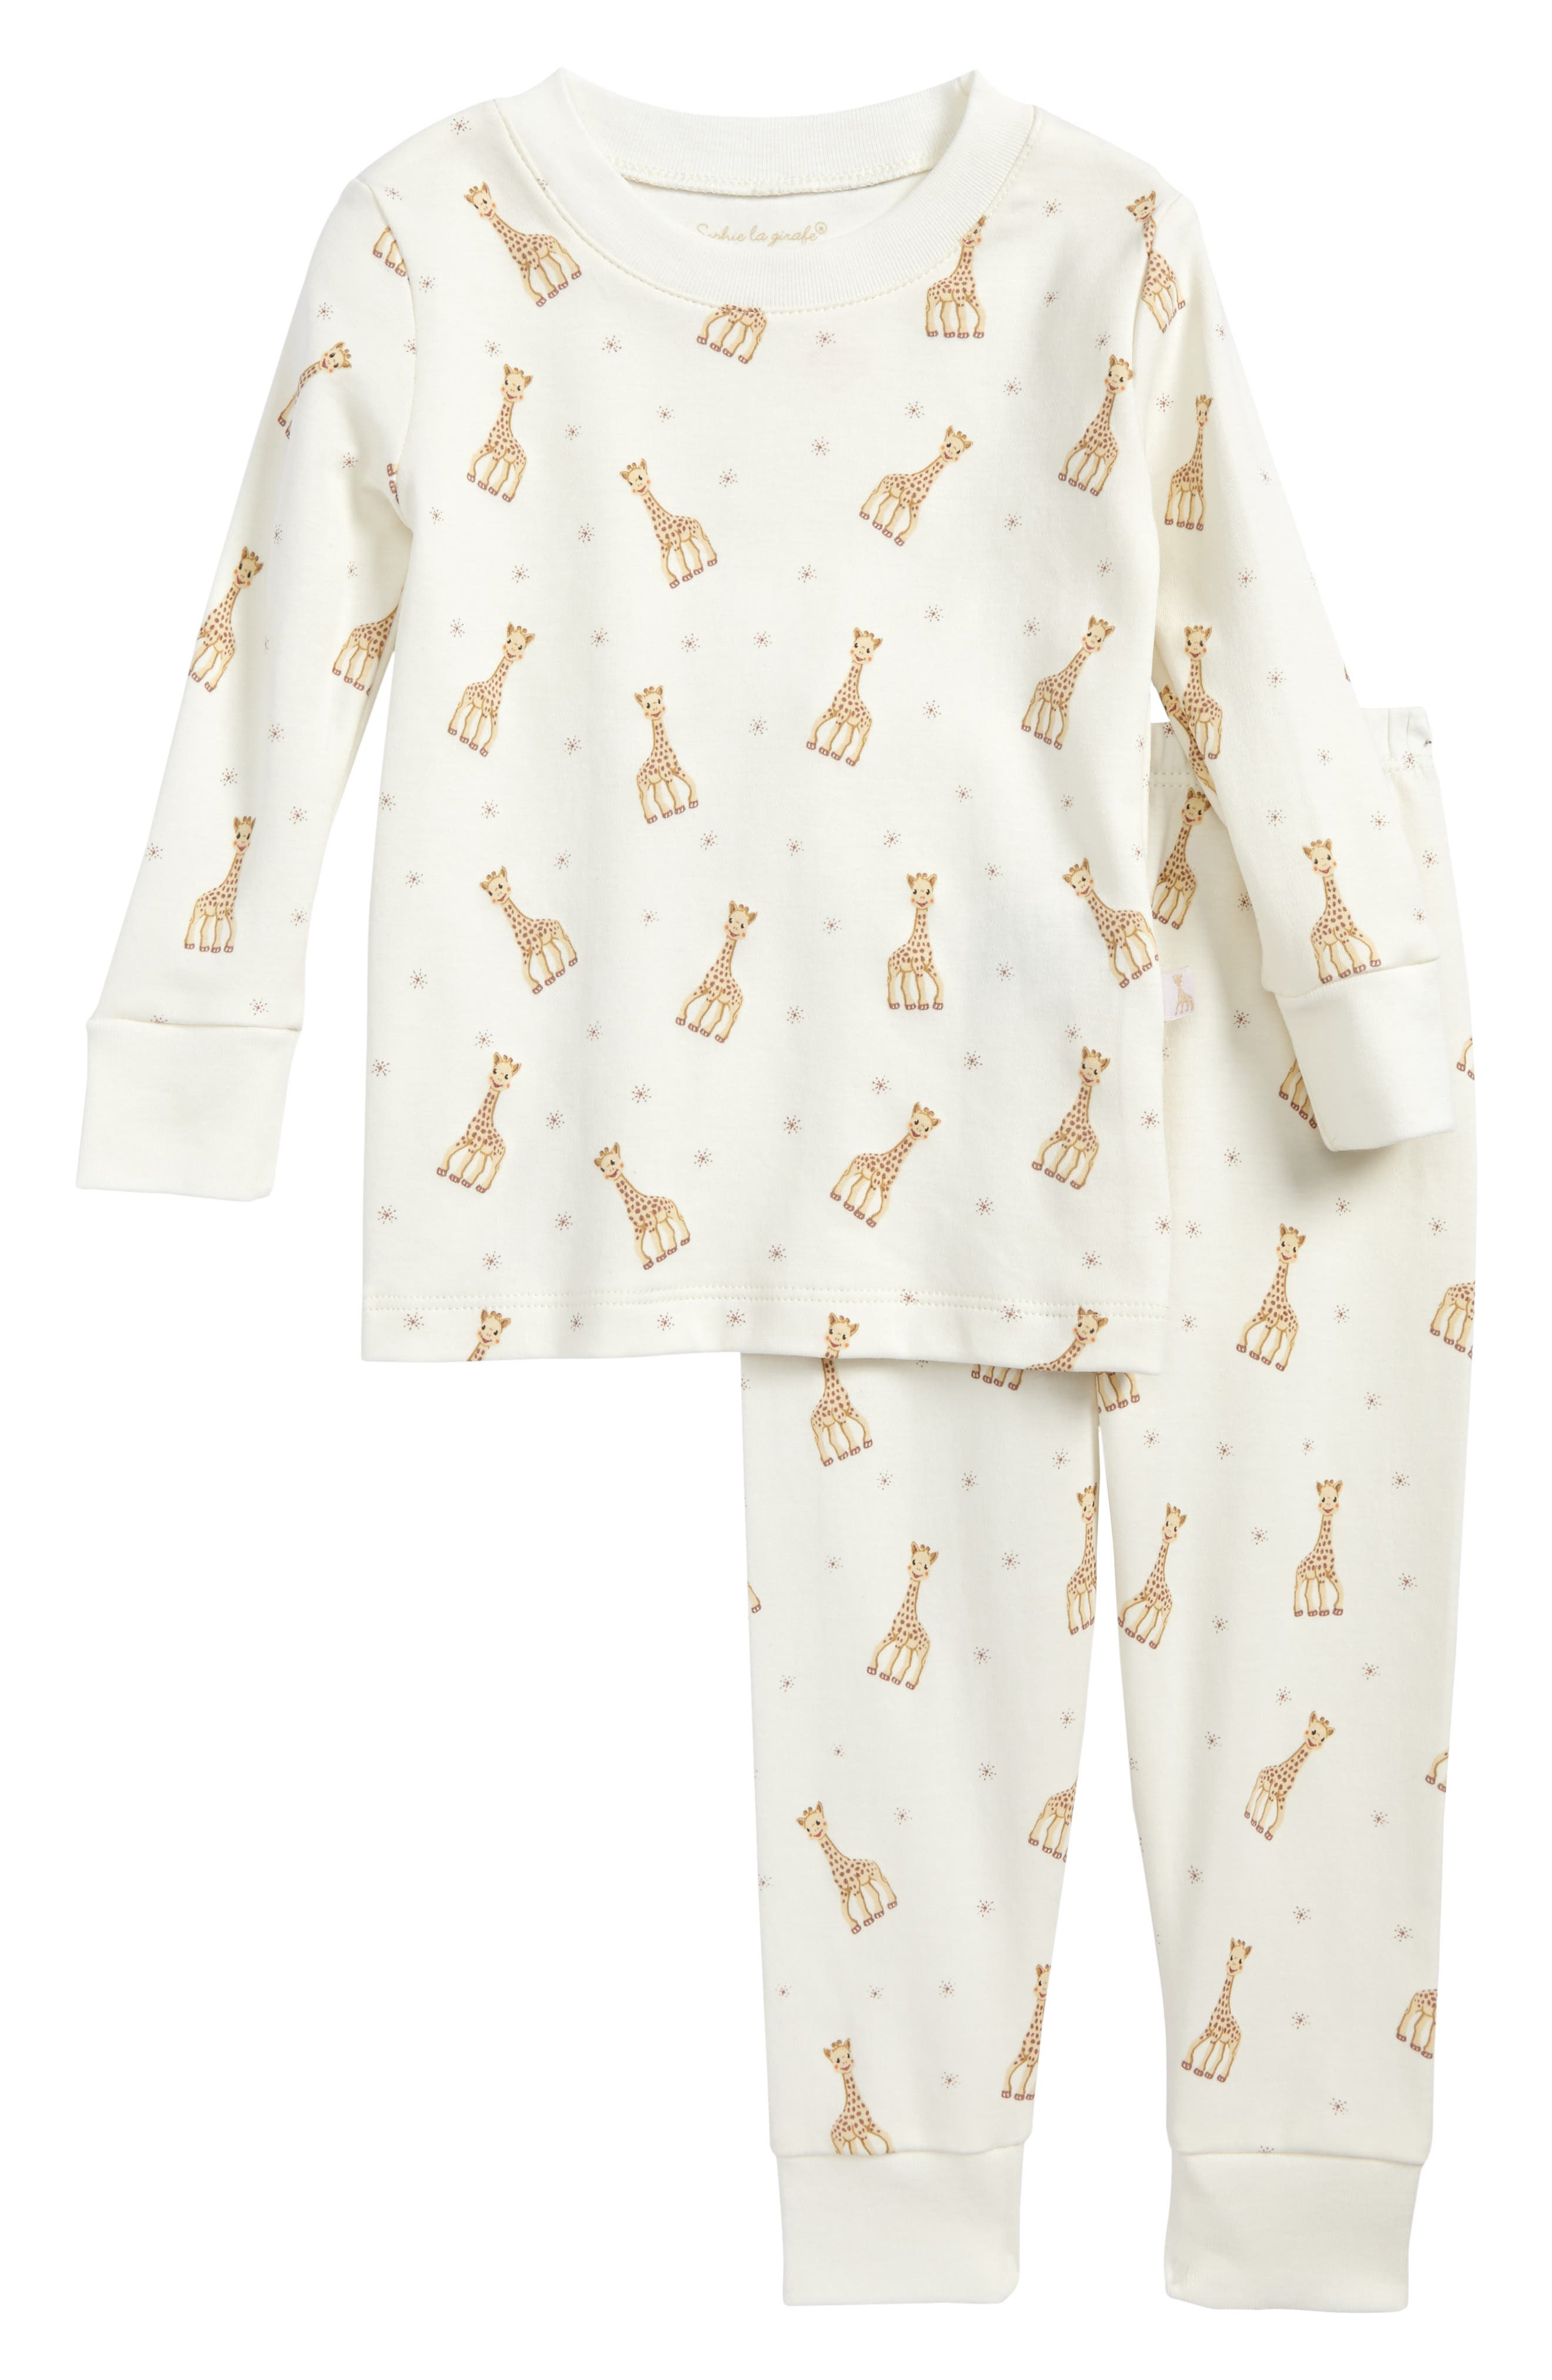 Sophie la Girafe Fitted Two-Piece Pajamas,                         Main,                         color, 750